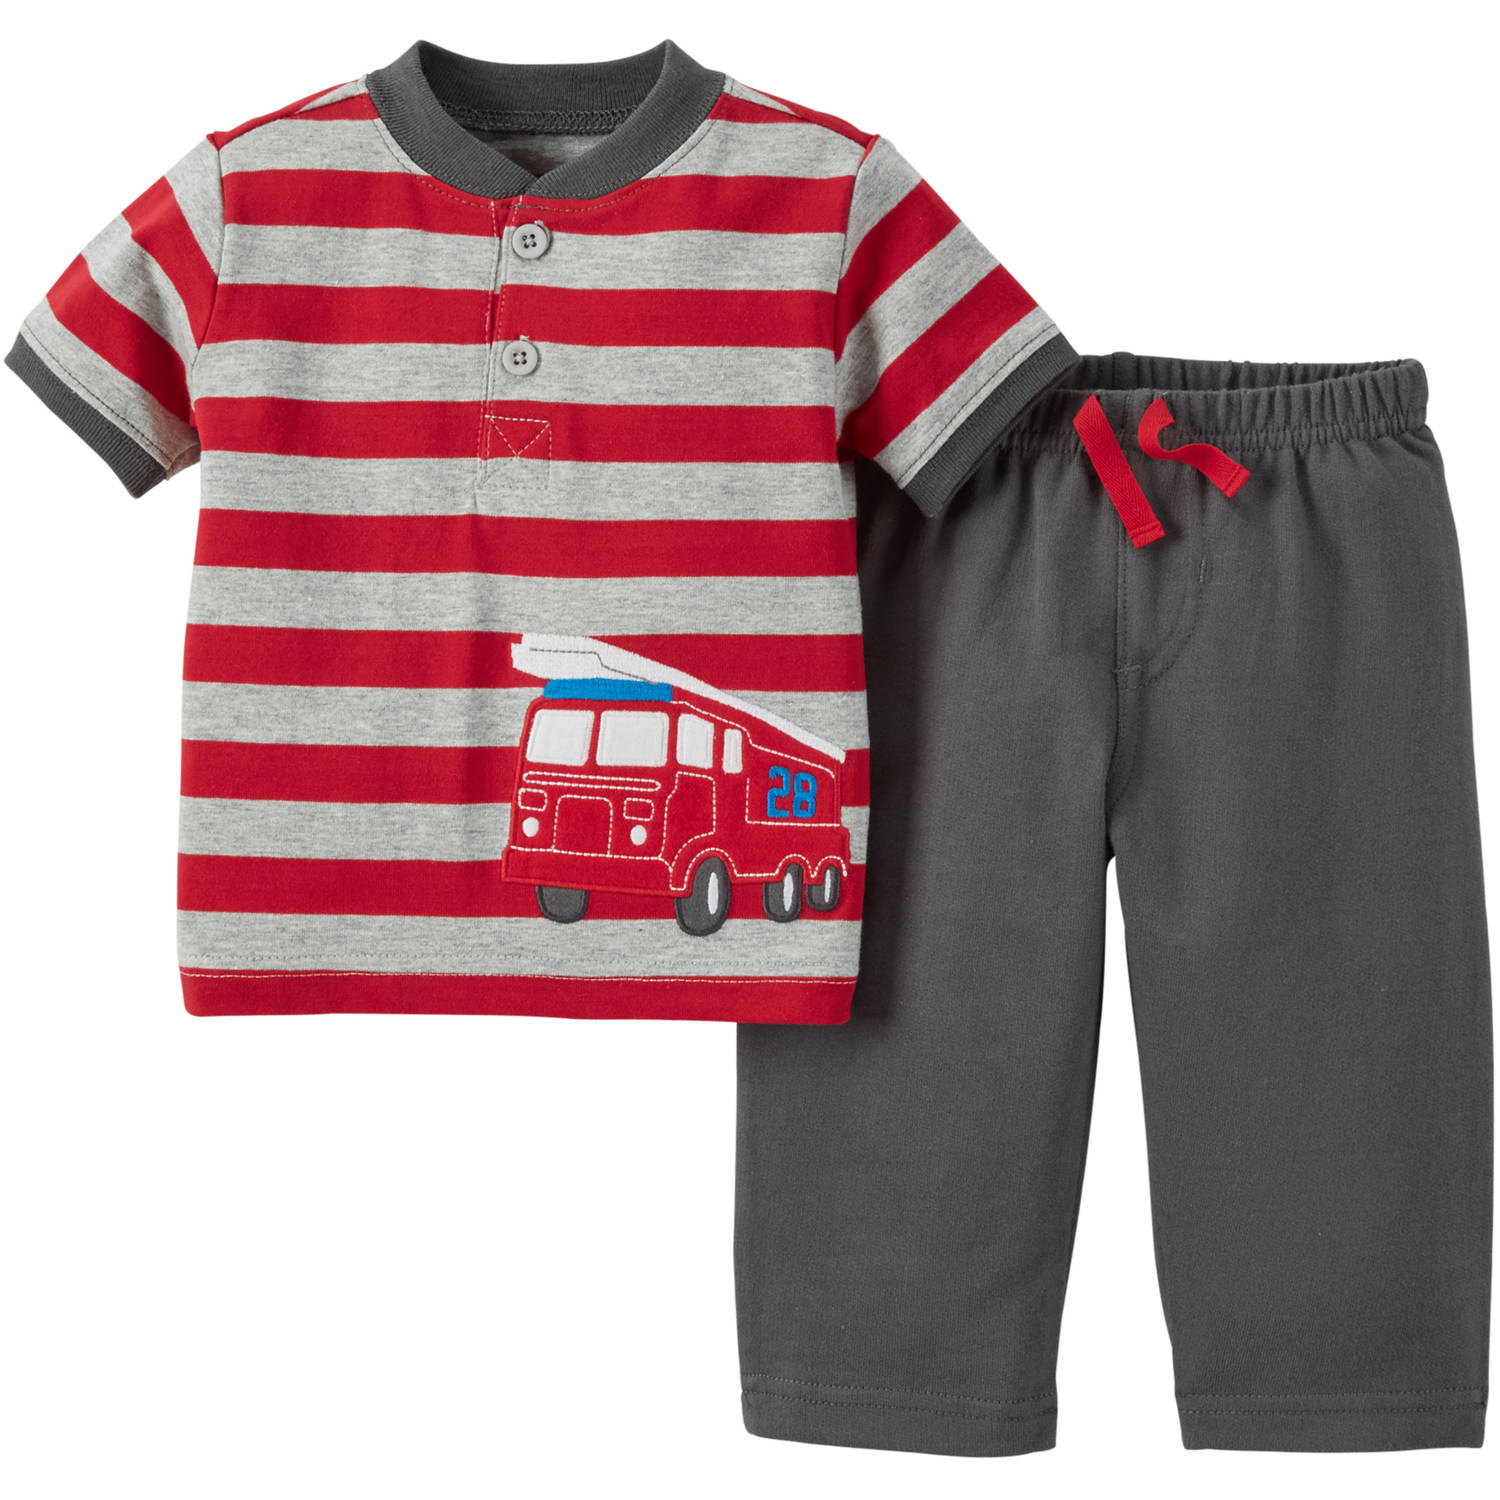 Child of Mine by Carter's Newborn Baby Boy Shirt and Pant Outfit Set 2 Pieces